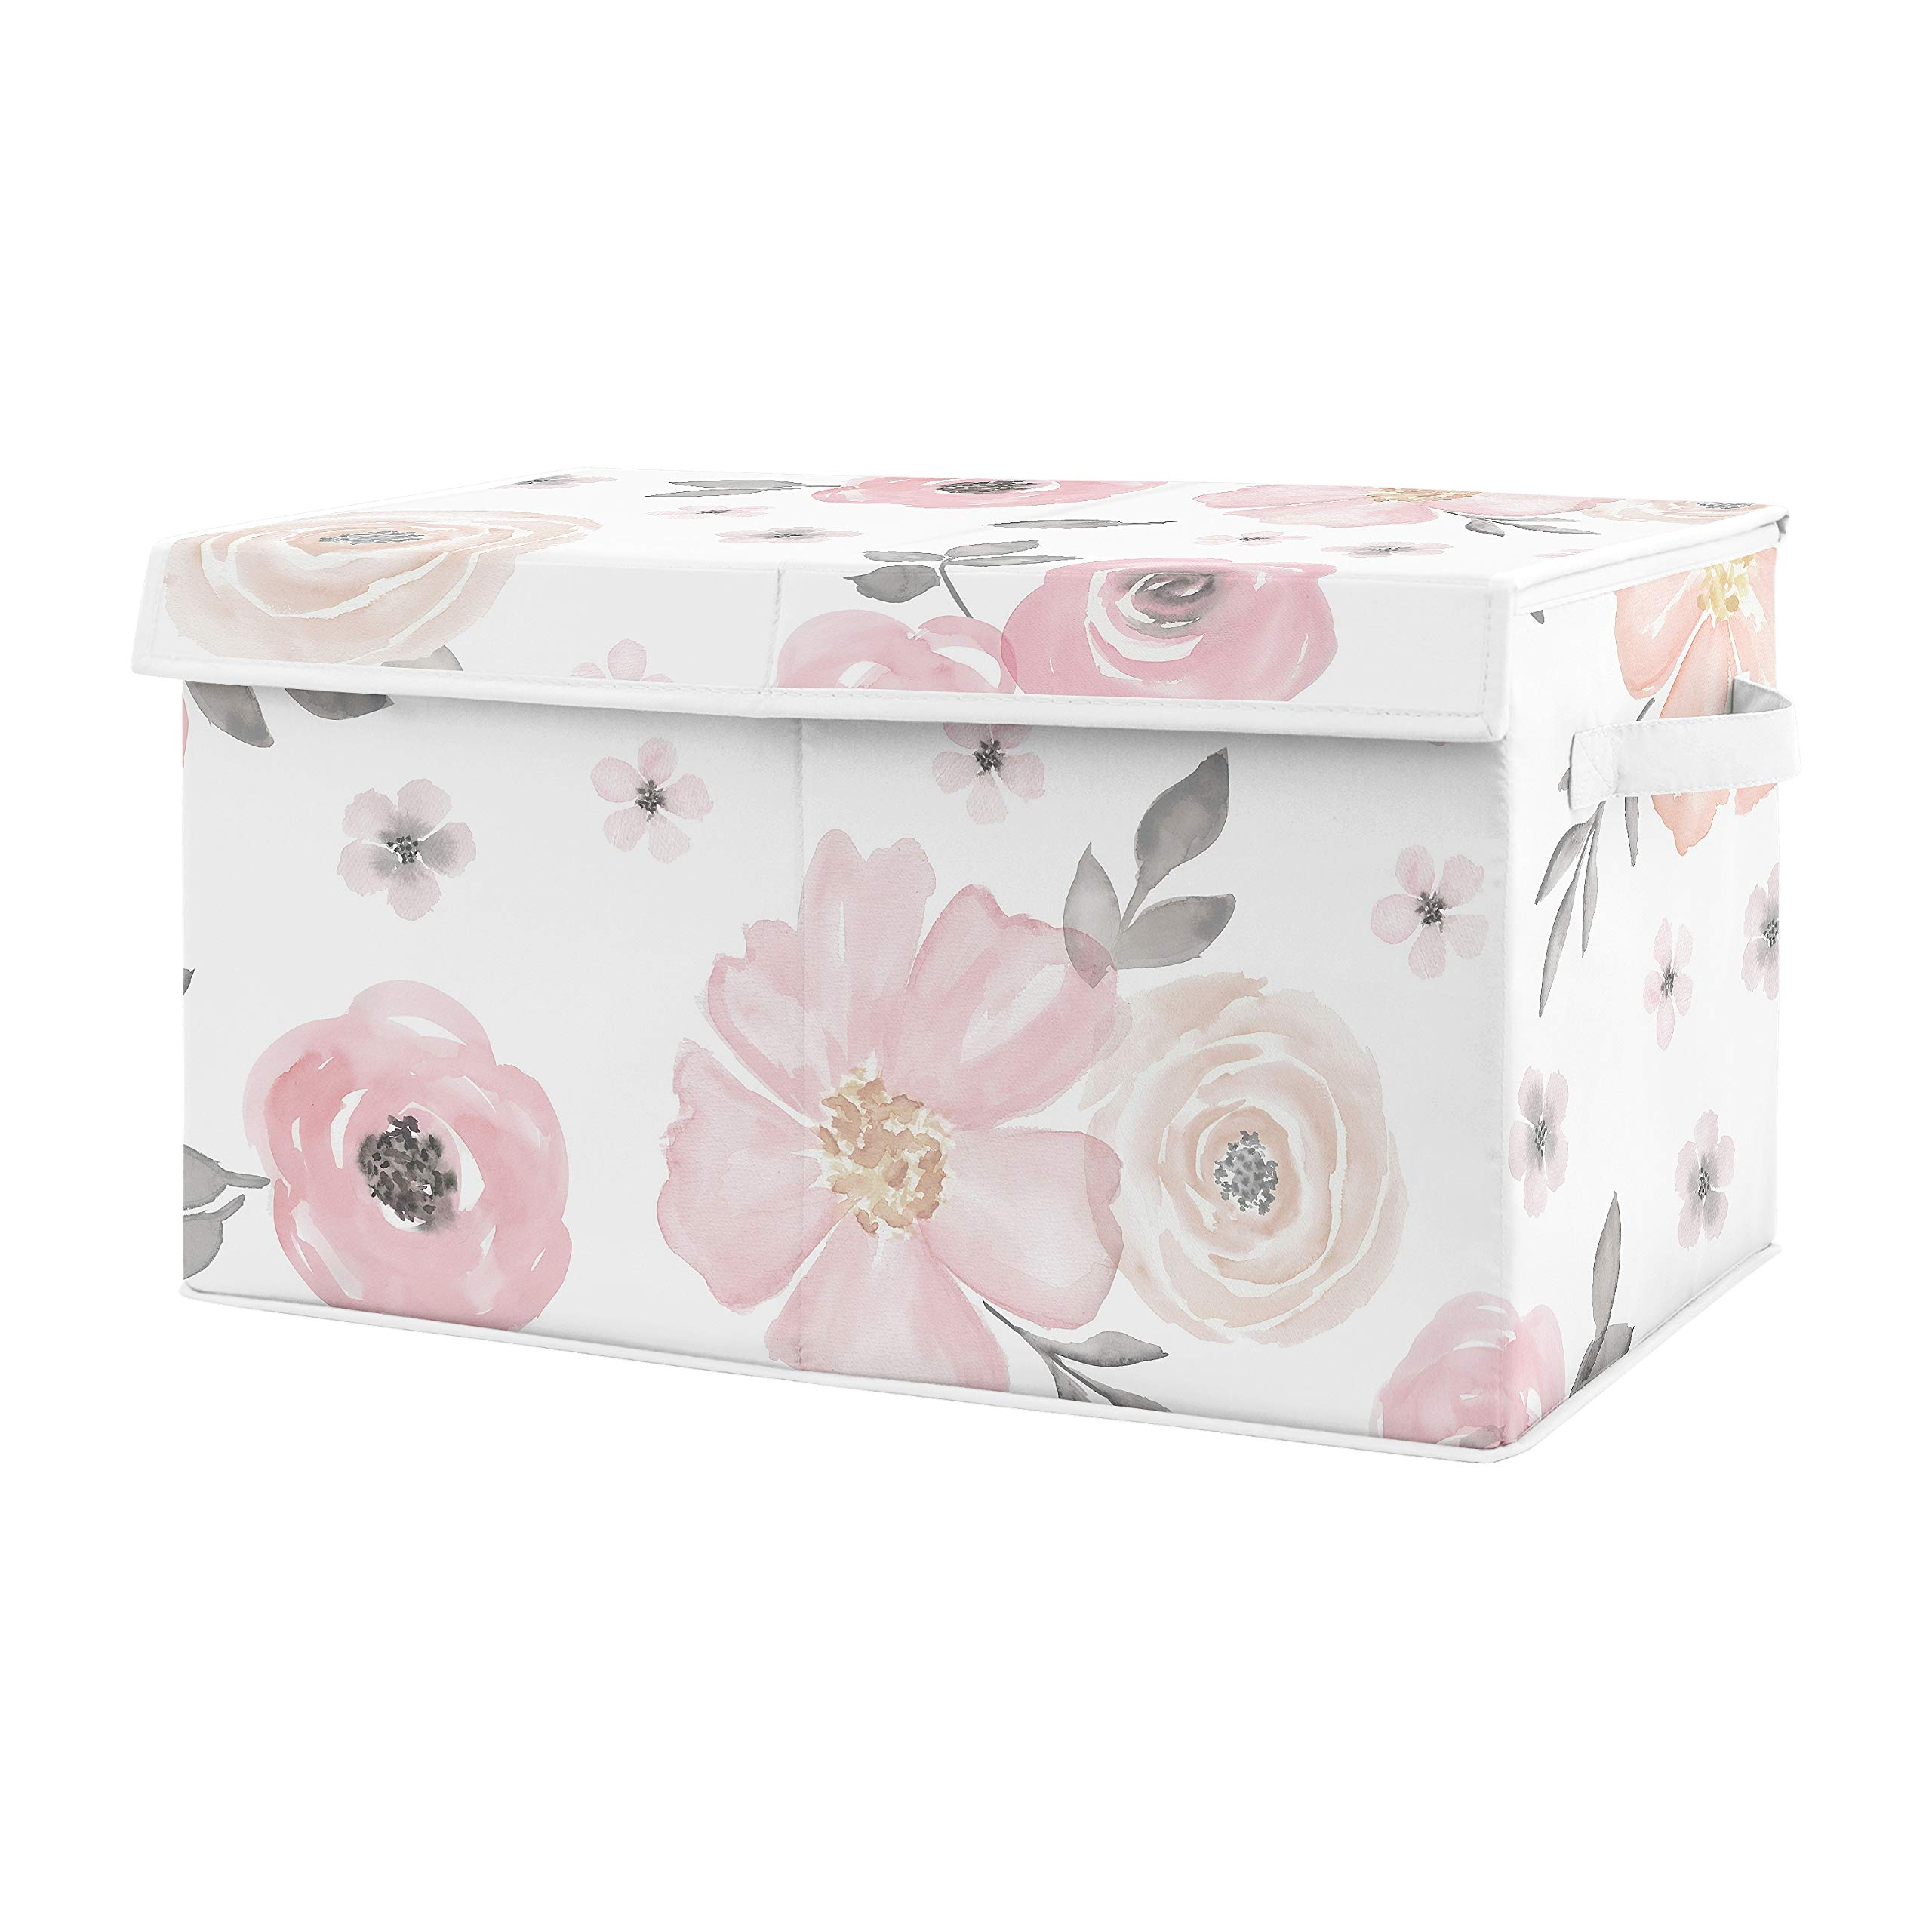 Sweet Jojo Designs Pink and Grey Rose Flower Girl Baby Nursery or Kids Room Small Fabric Toy Bin Storage Box Chest for Watercolor Floral Collection by Sweet Jojo Designs